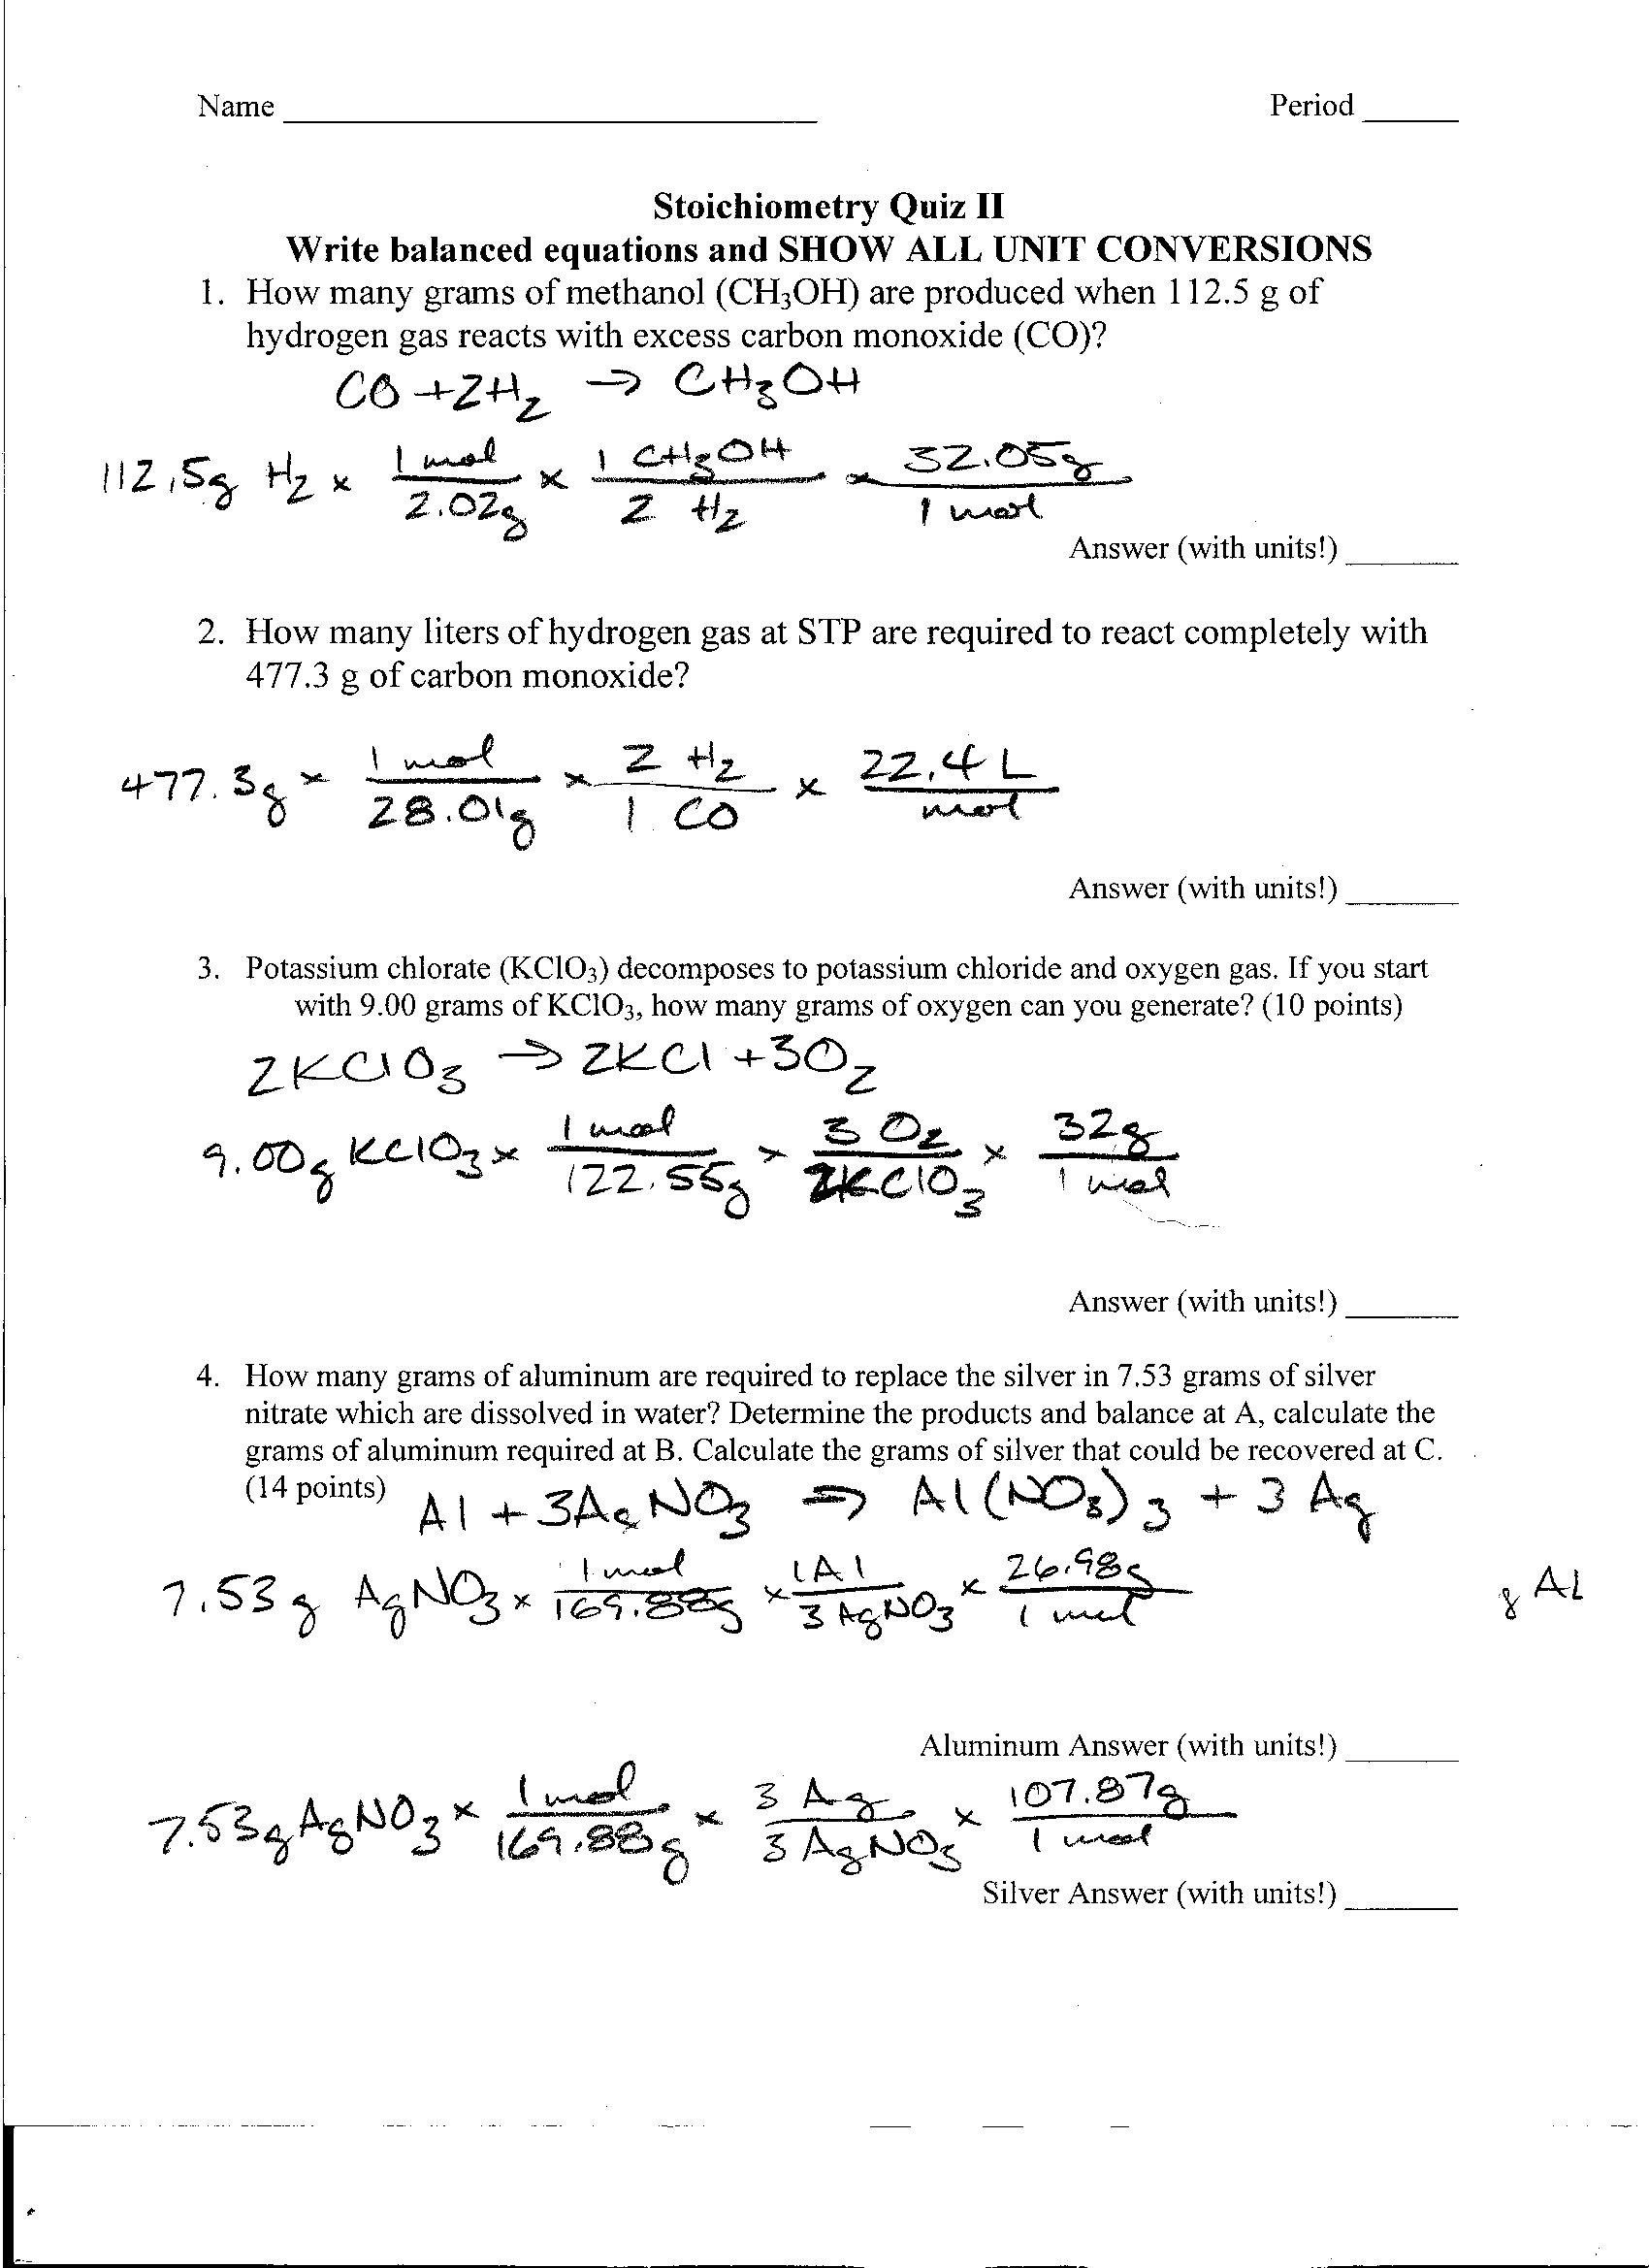 Foothill High School – Cryptic Quiz Worksheet Answers